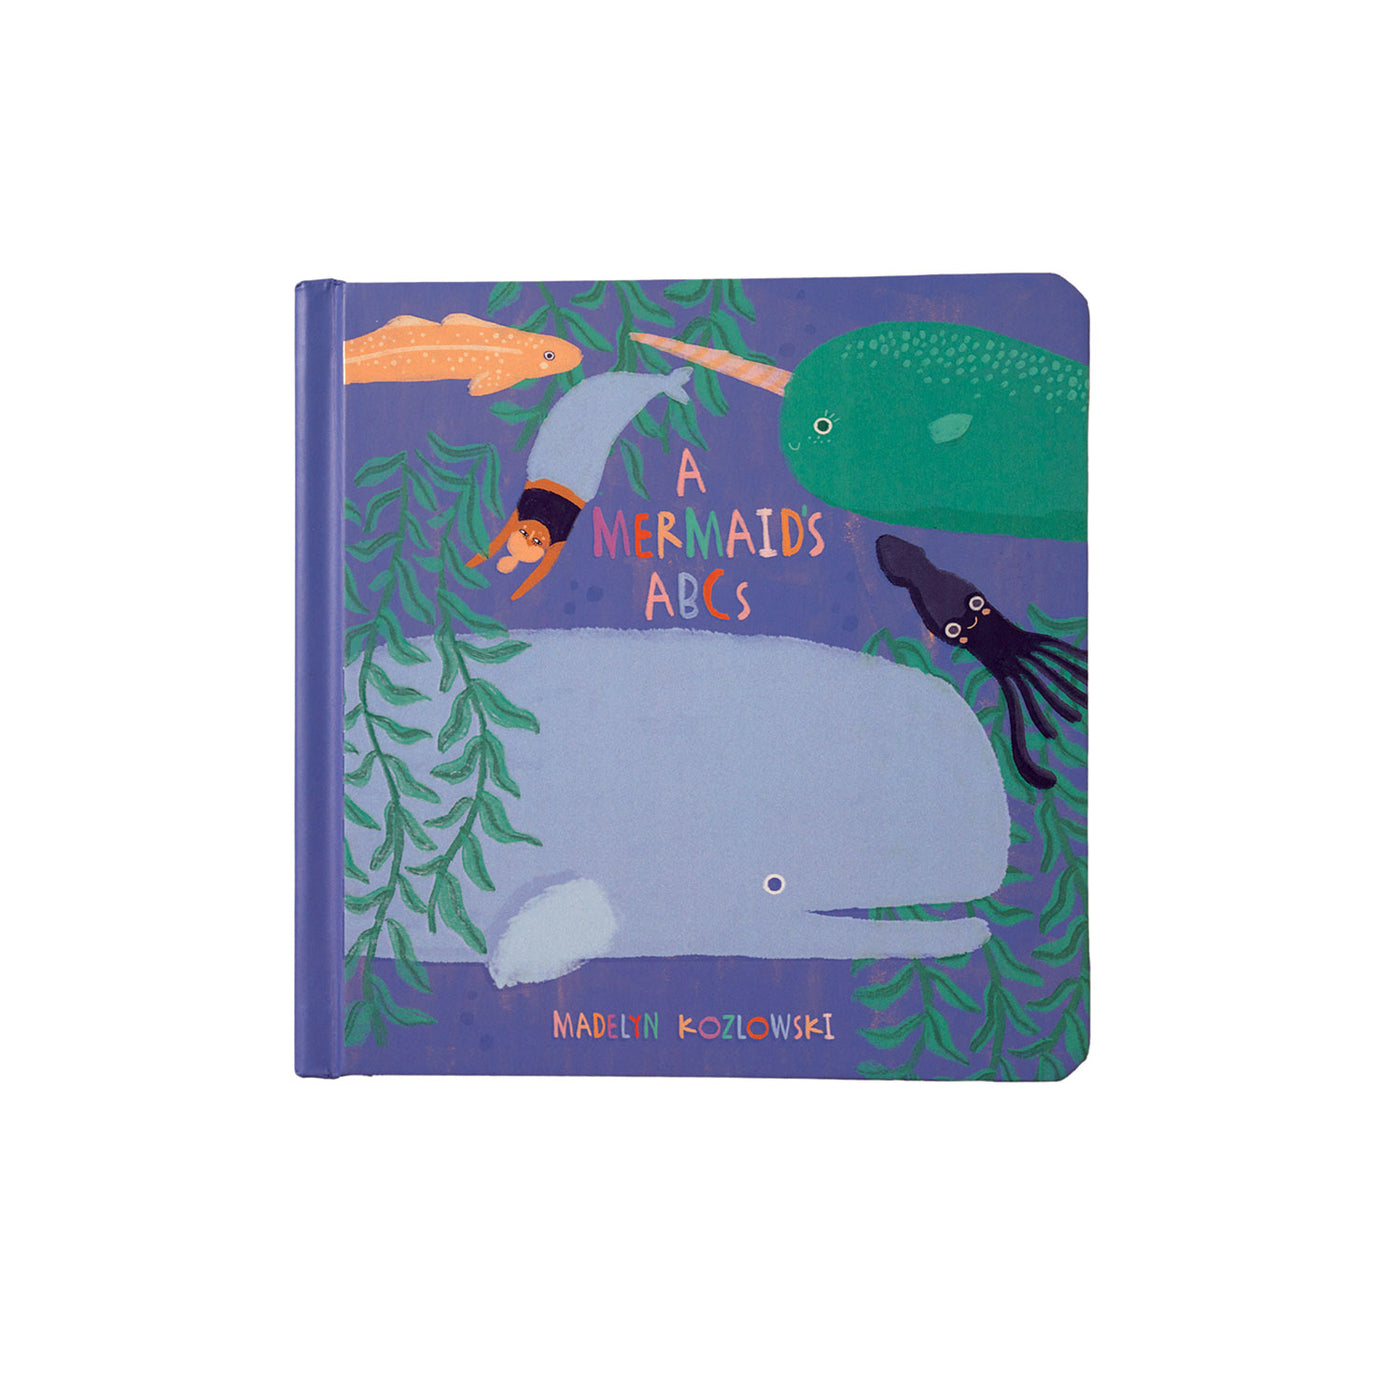 A Mermaids ABC Book - Manhattan Toy